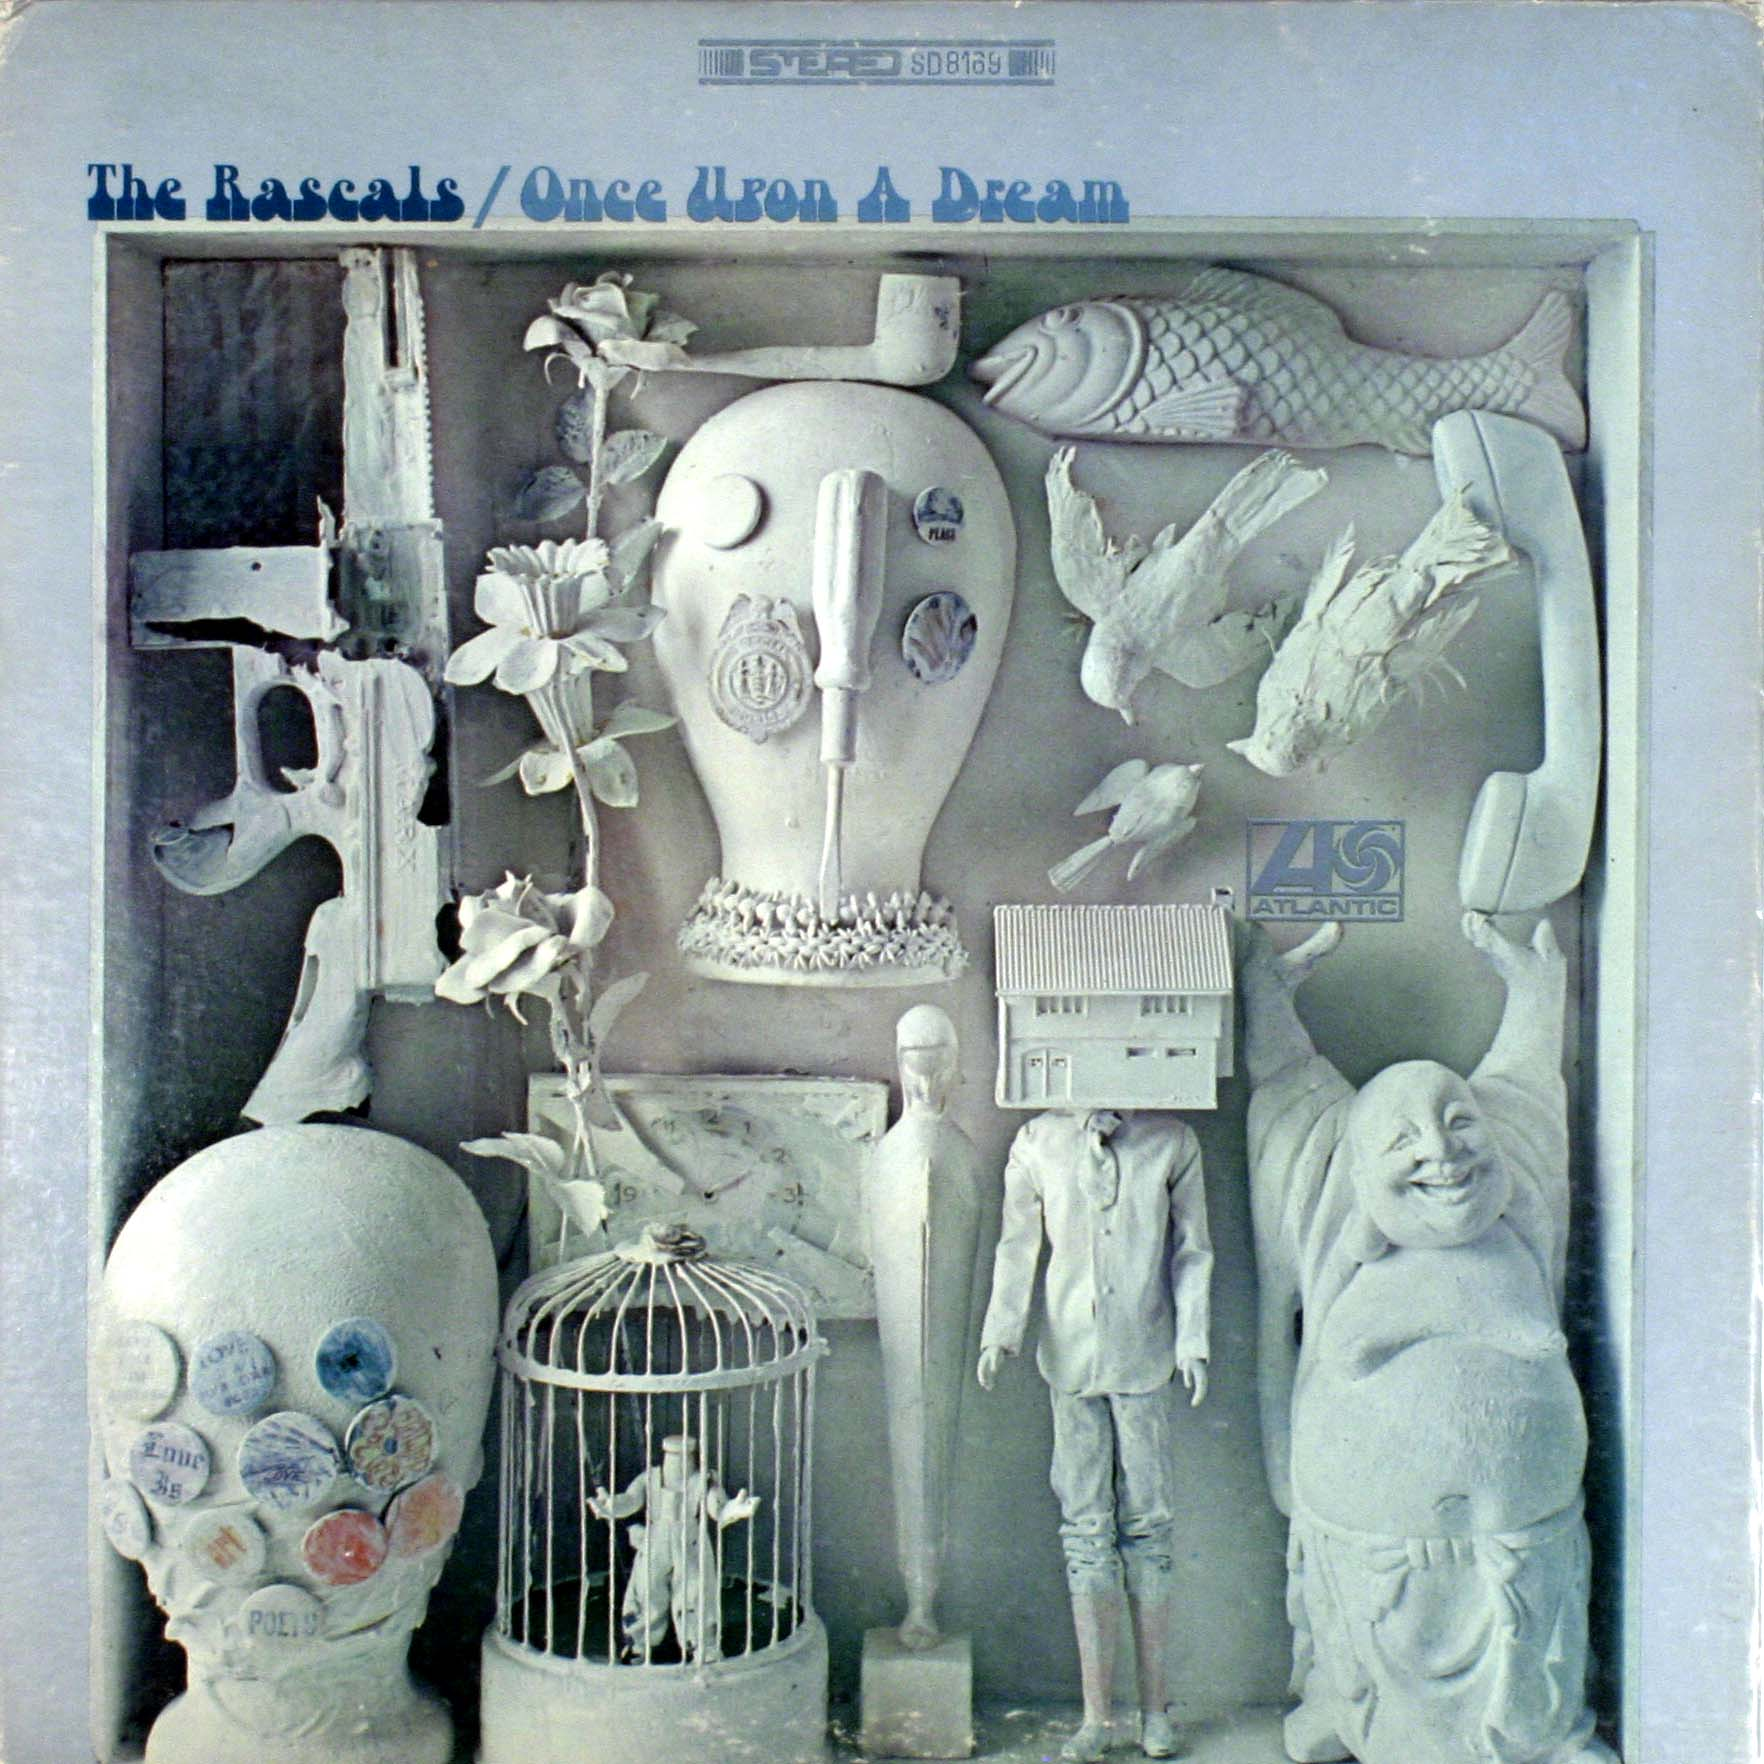 Rascals Once Upon A Dream